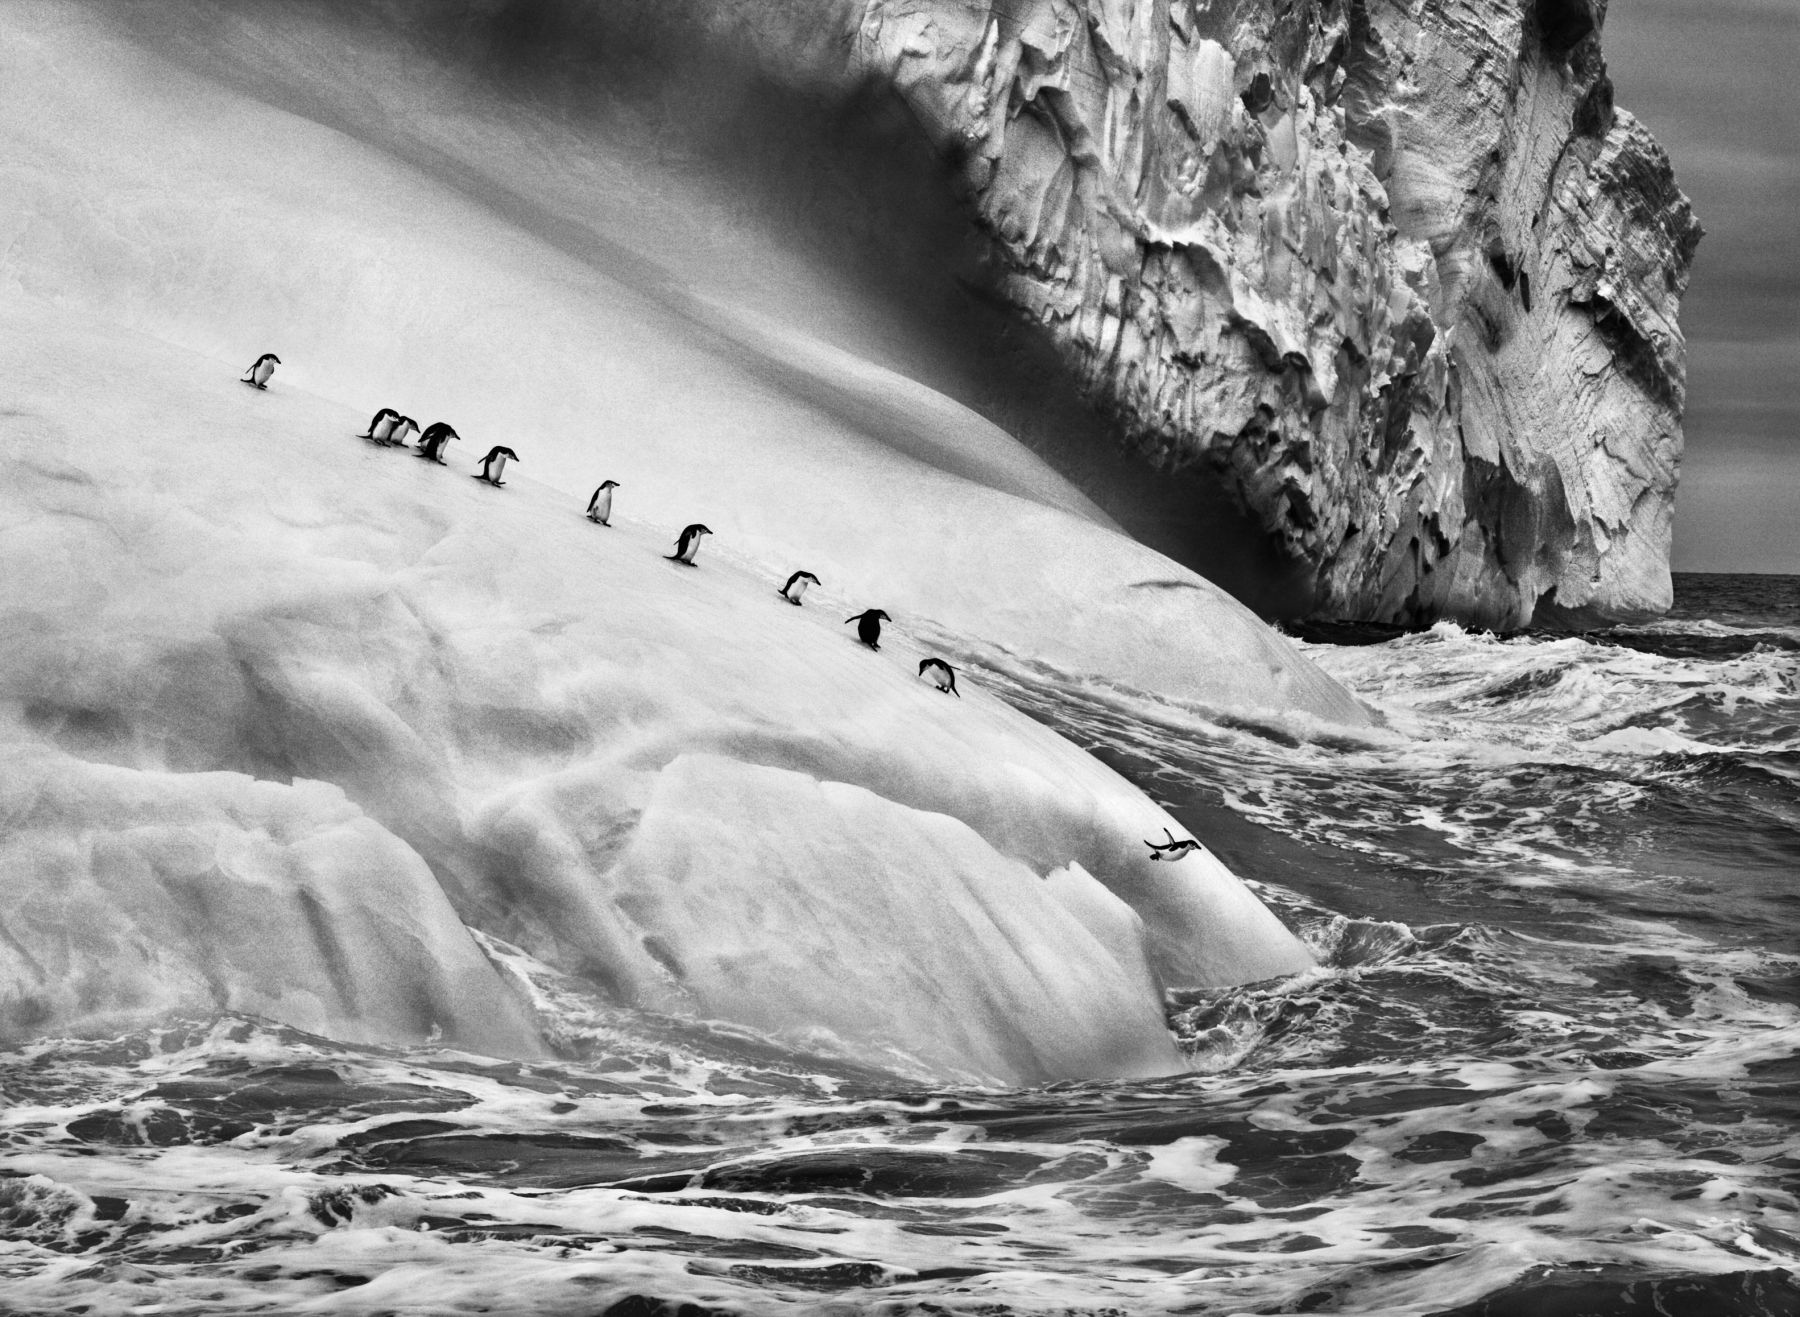 Chinstrap penguins on icebergs between Zavodovski and Visokoi islands, South Sandwich Islands, from the series Genesis, 2009. 16 x 20, 20 x 24, 24 x 35, 36 x 50 or 50 x 68 inch gelatin silver print